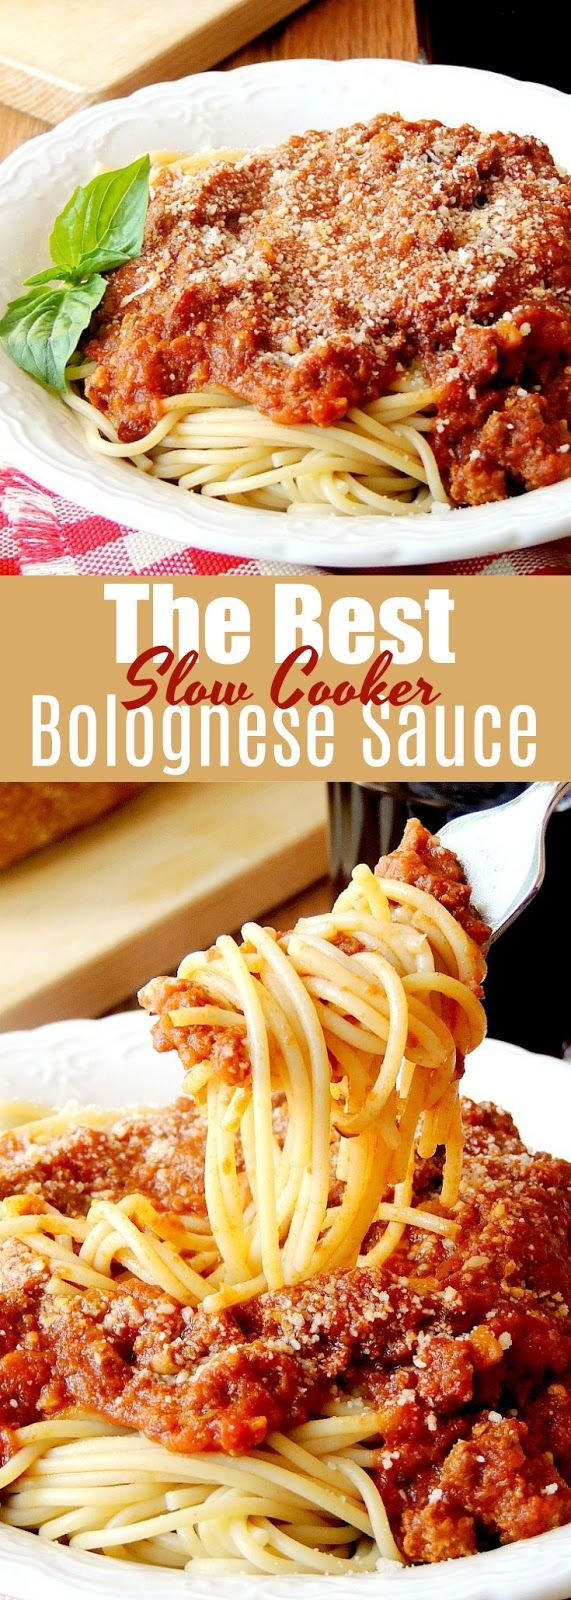 The Best Slow Cooker Bolognese Sauce